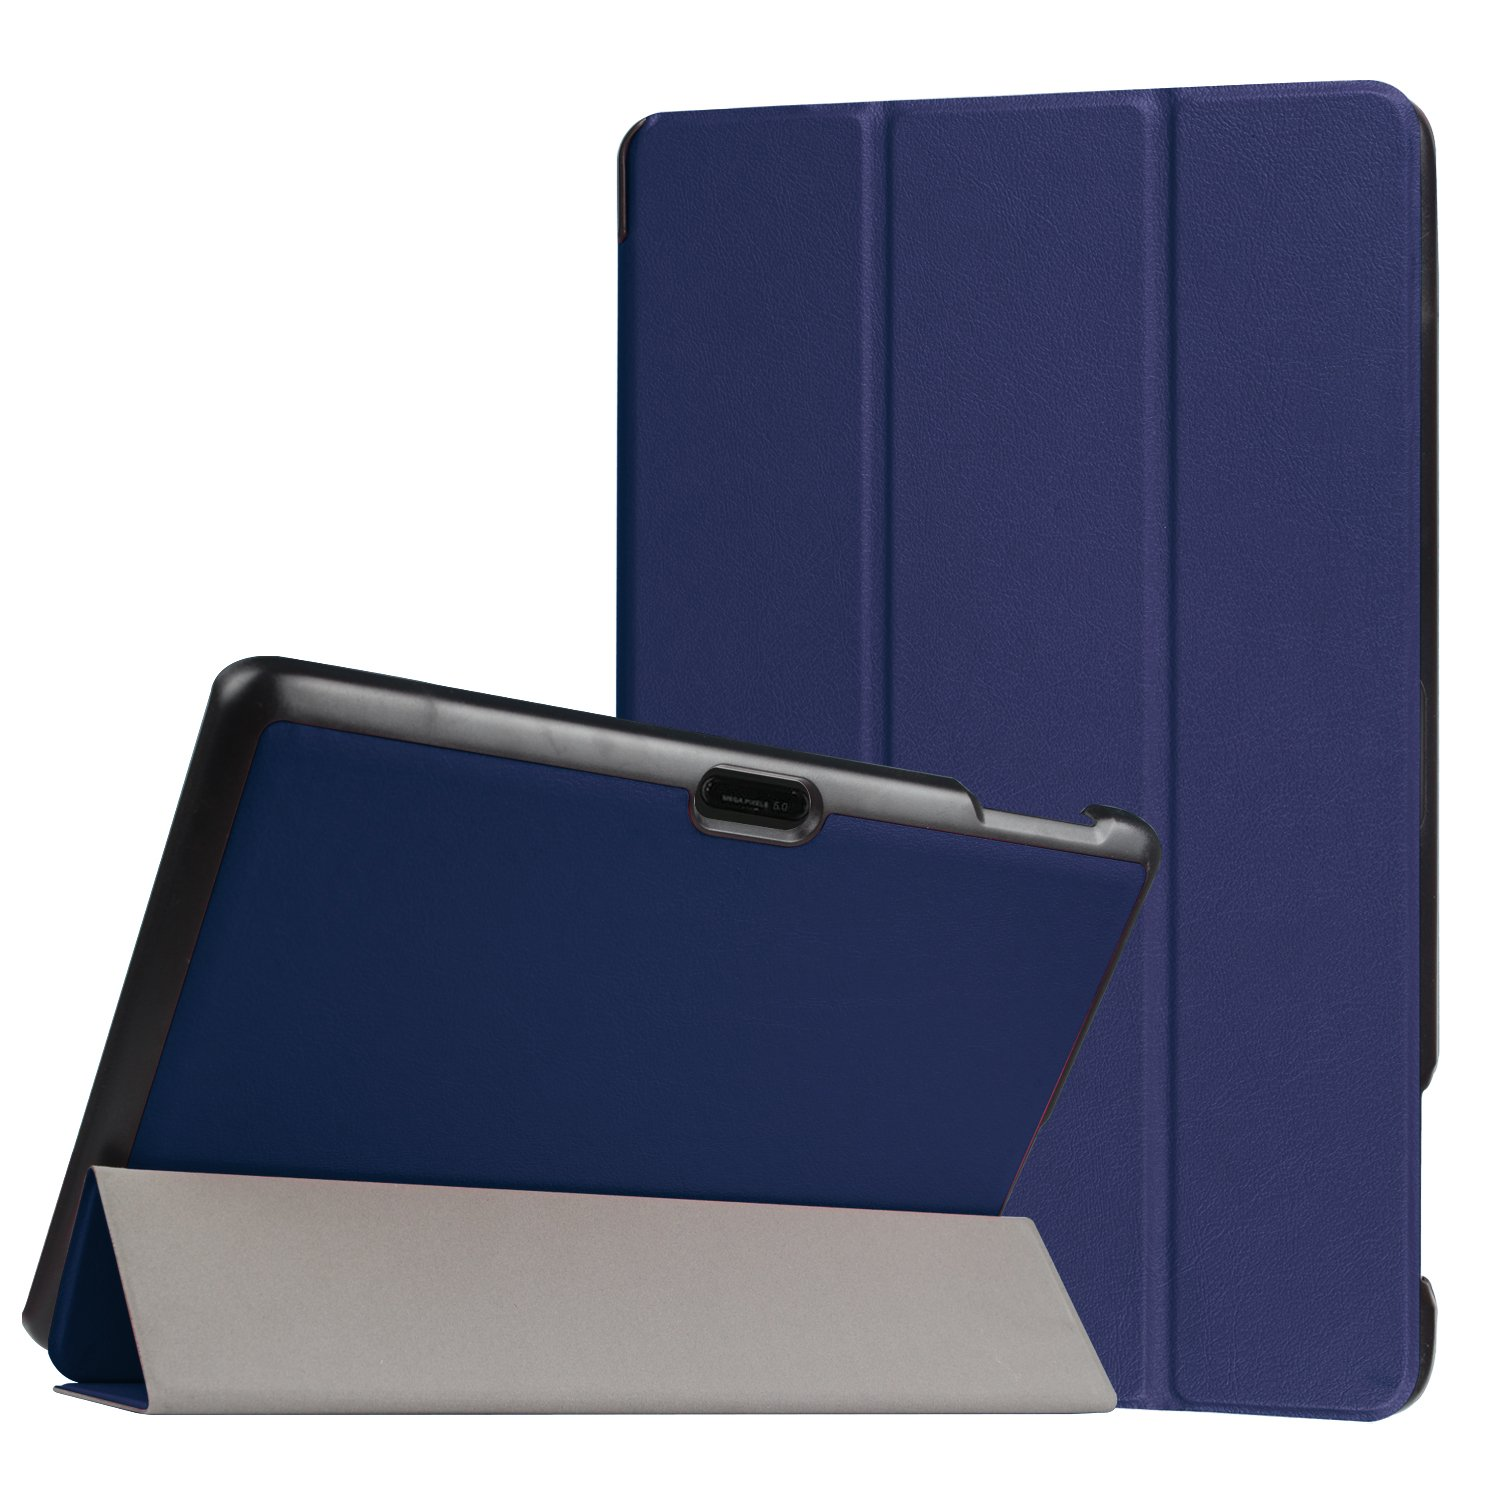 Dragon Touch X10 / KingPad K100 10.6'' Inch Case - Heavy Duty Lightweight Ultra Slim Folding Cover Kickstand PU Leather Folio Shell Full-Protective Shell for Dragon Touch X10 / KingPad K100 (navy blue)